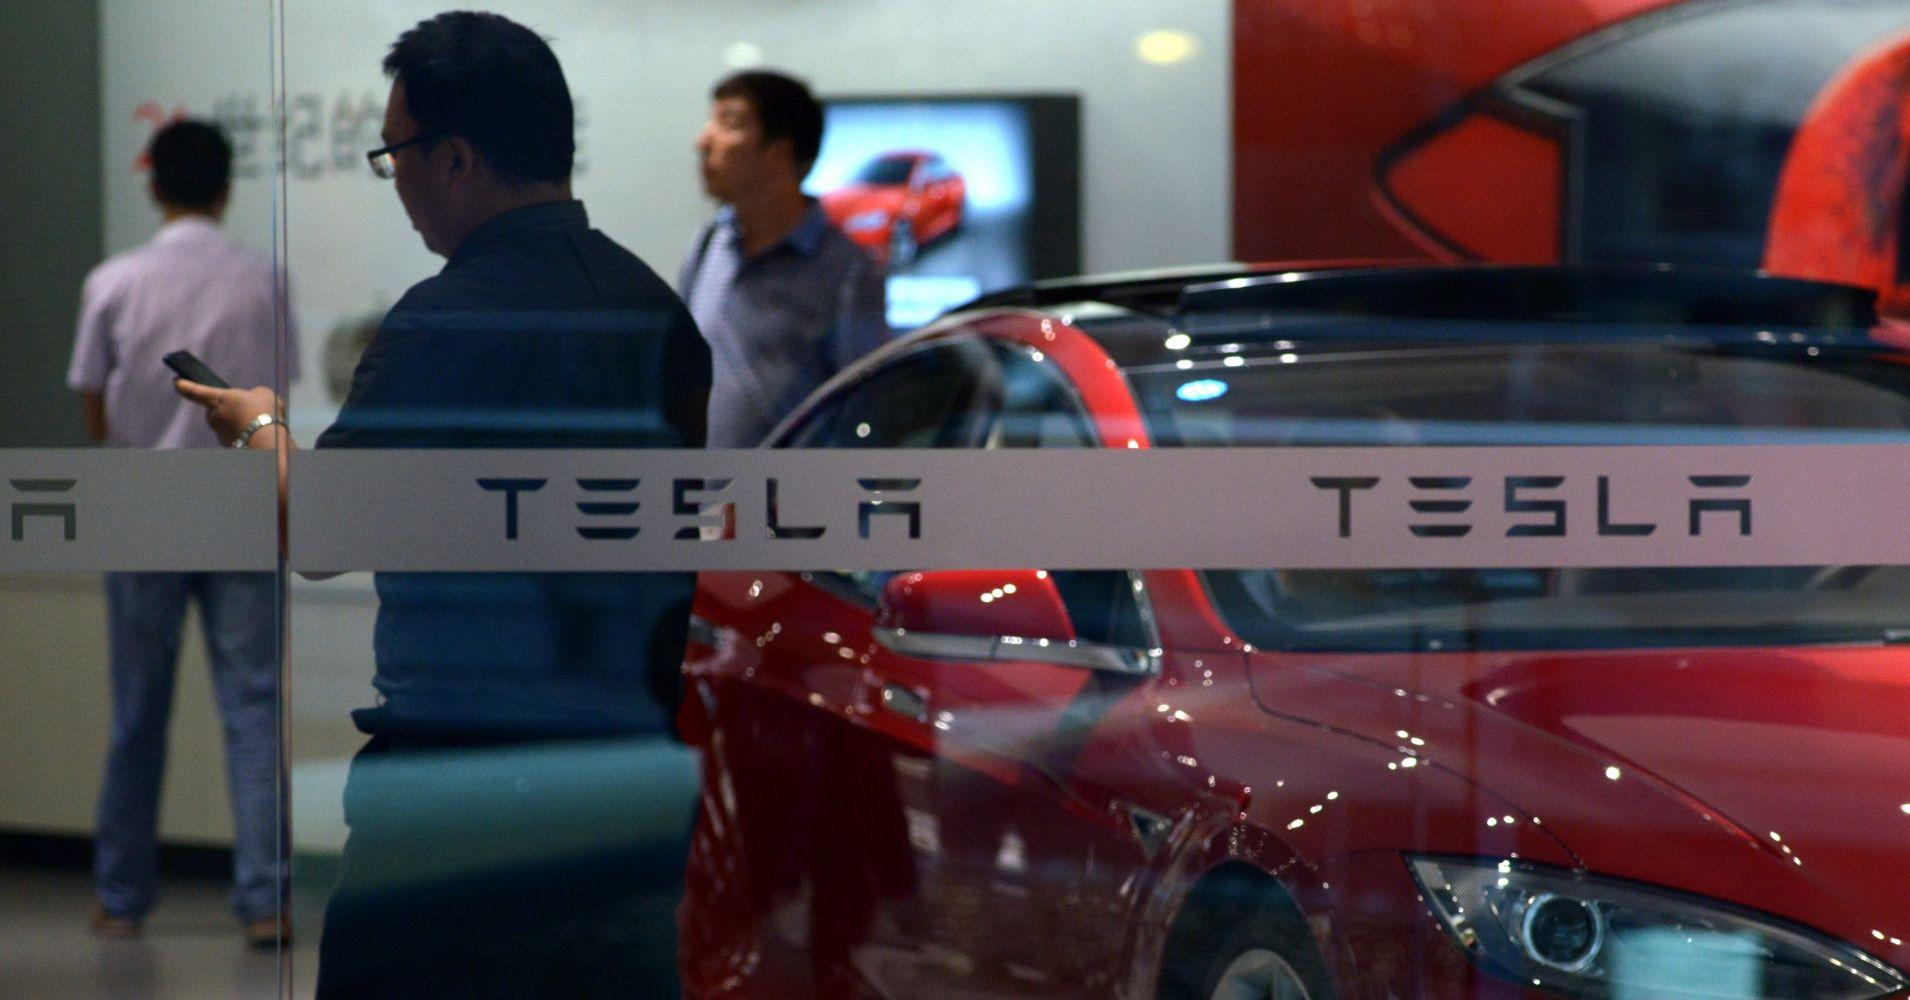 Tesla shares drop after analysts worry about China trade war risk